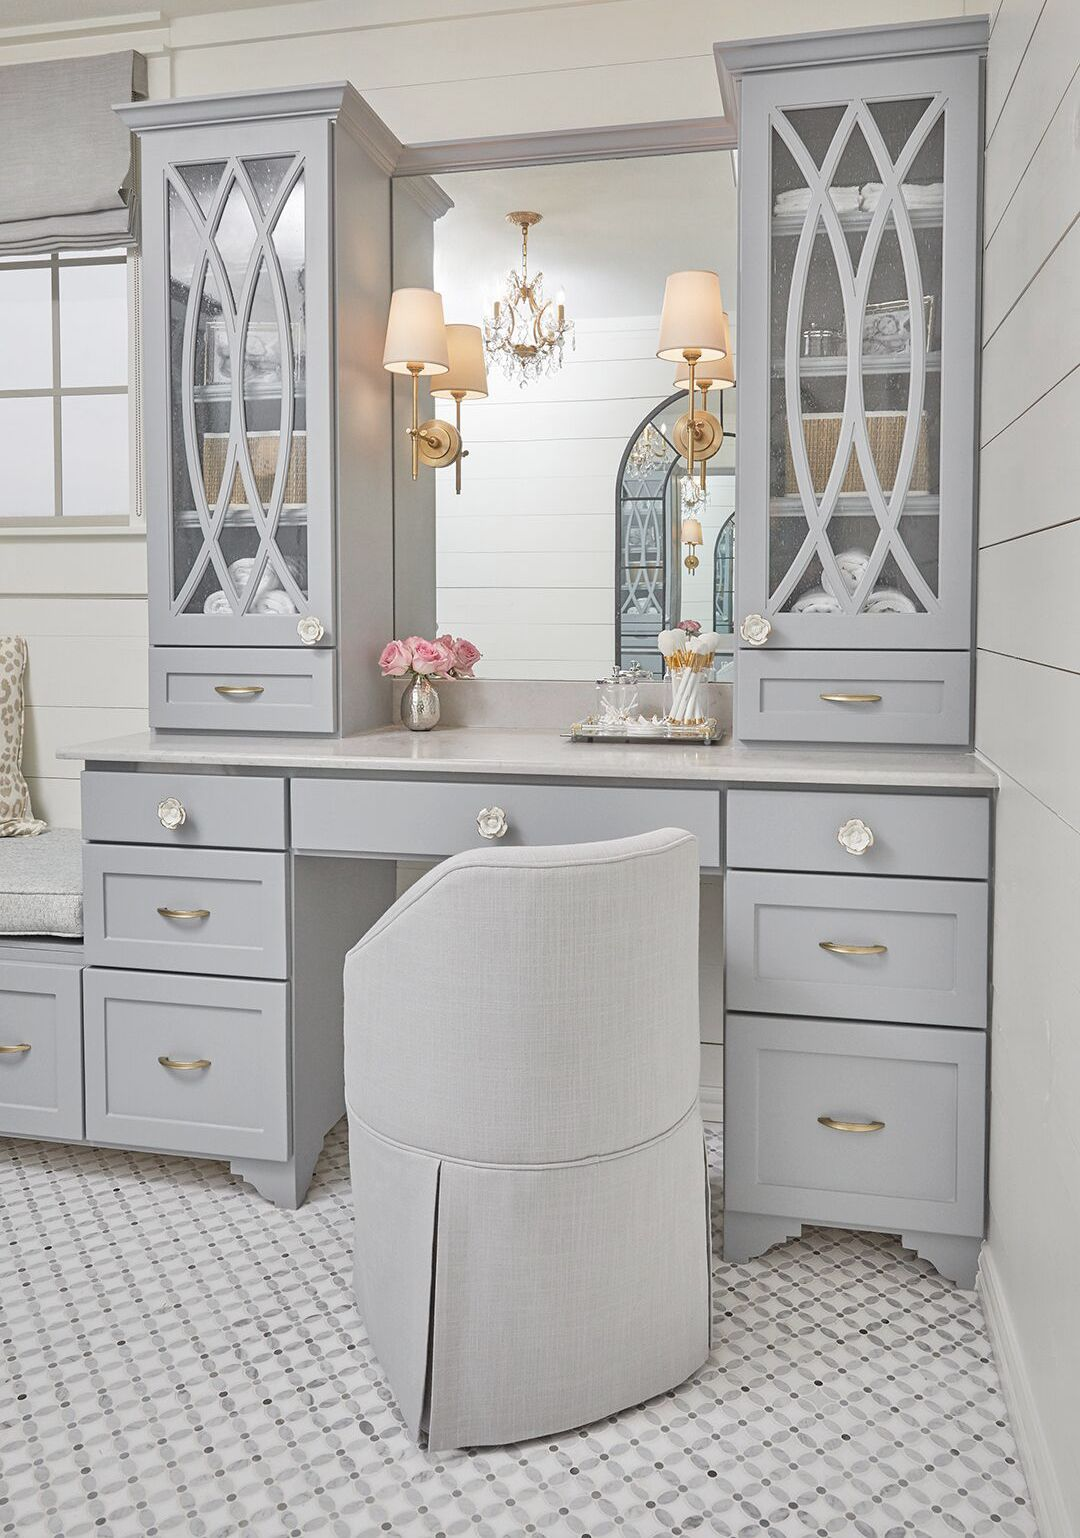 Pin by A Well Dressed Home, LLC on Our Residential Design